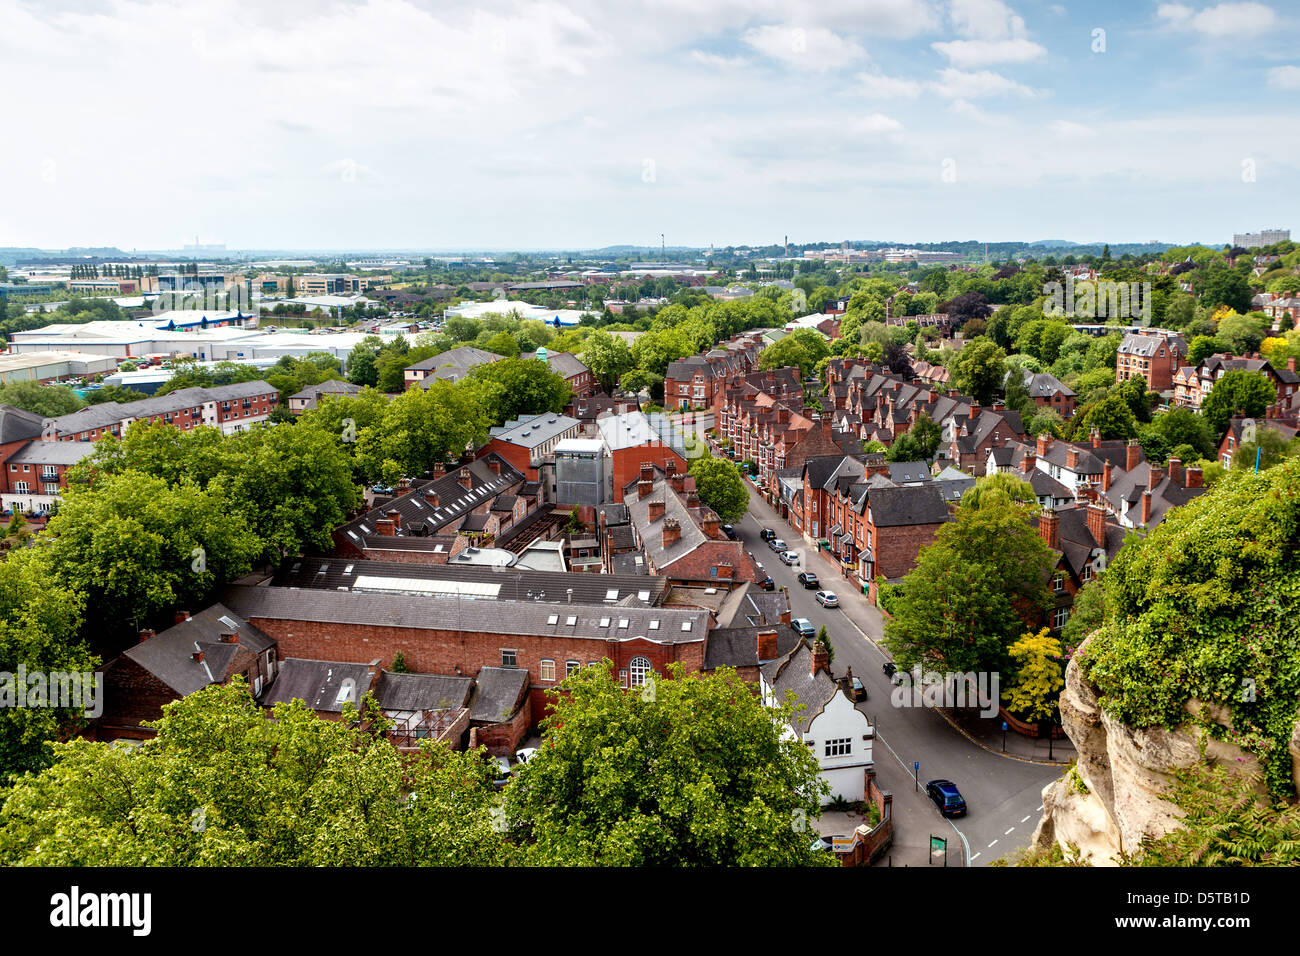 Nottingham - Stock Image